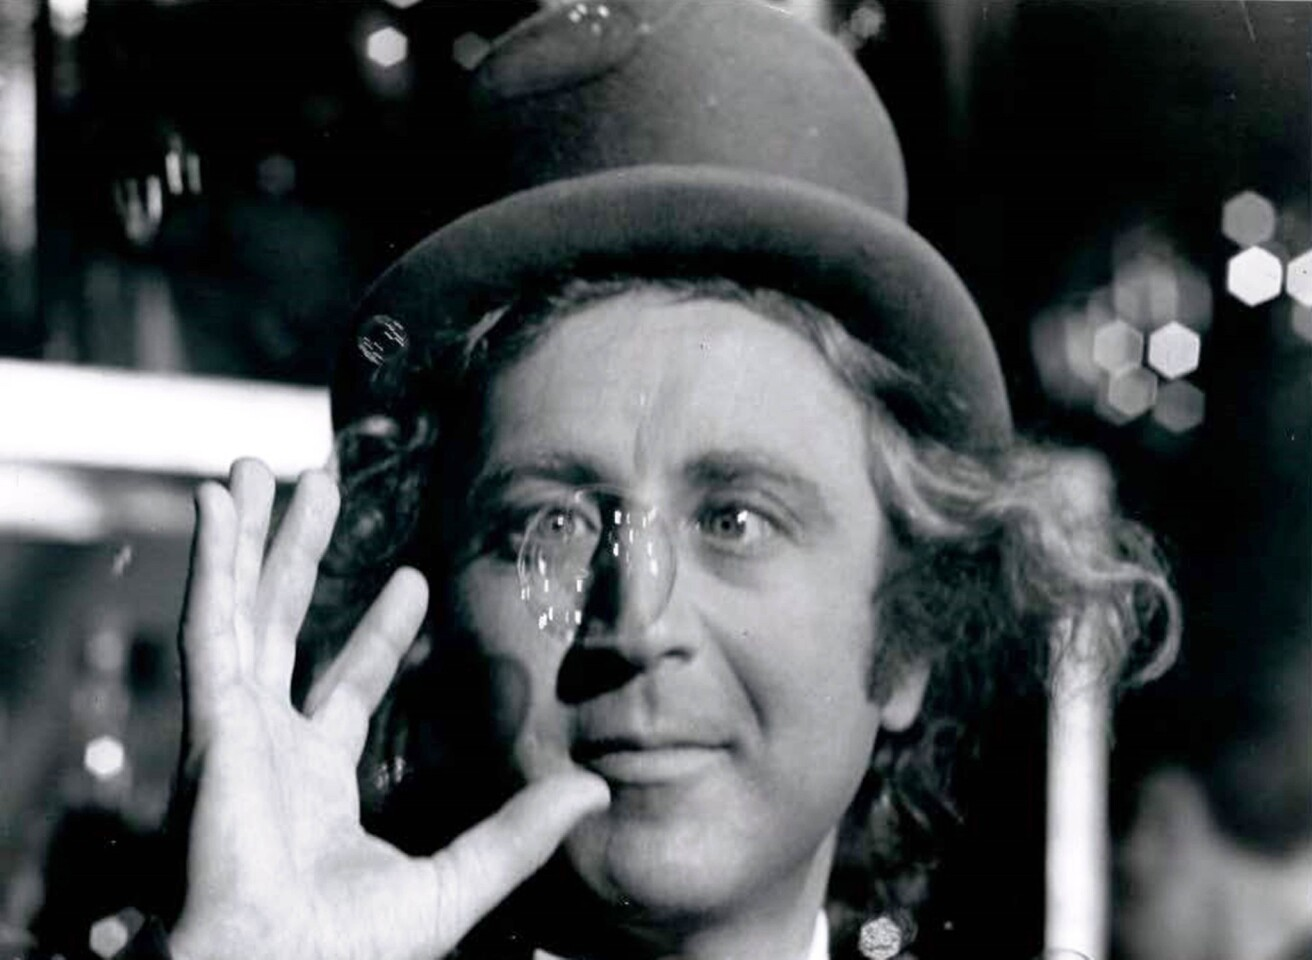 """Though the film does not appear in the National Film Registry, """"Willy Wonka & the Chocolate Factory"""" has gained significance since its release."""